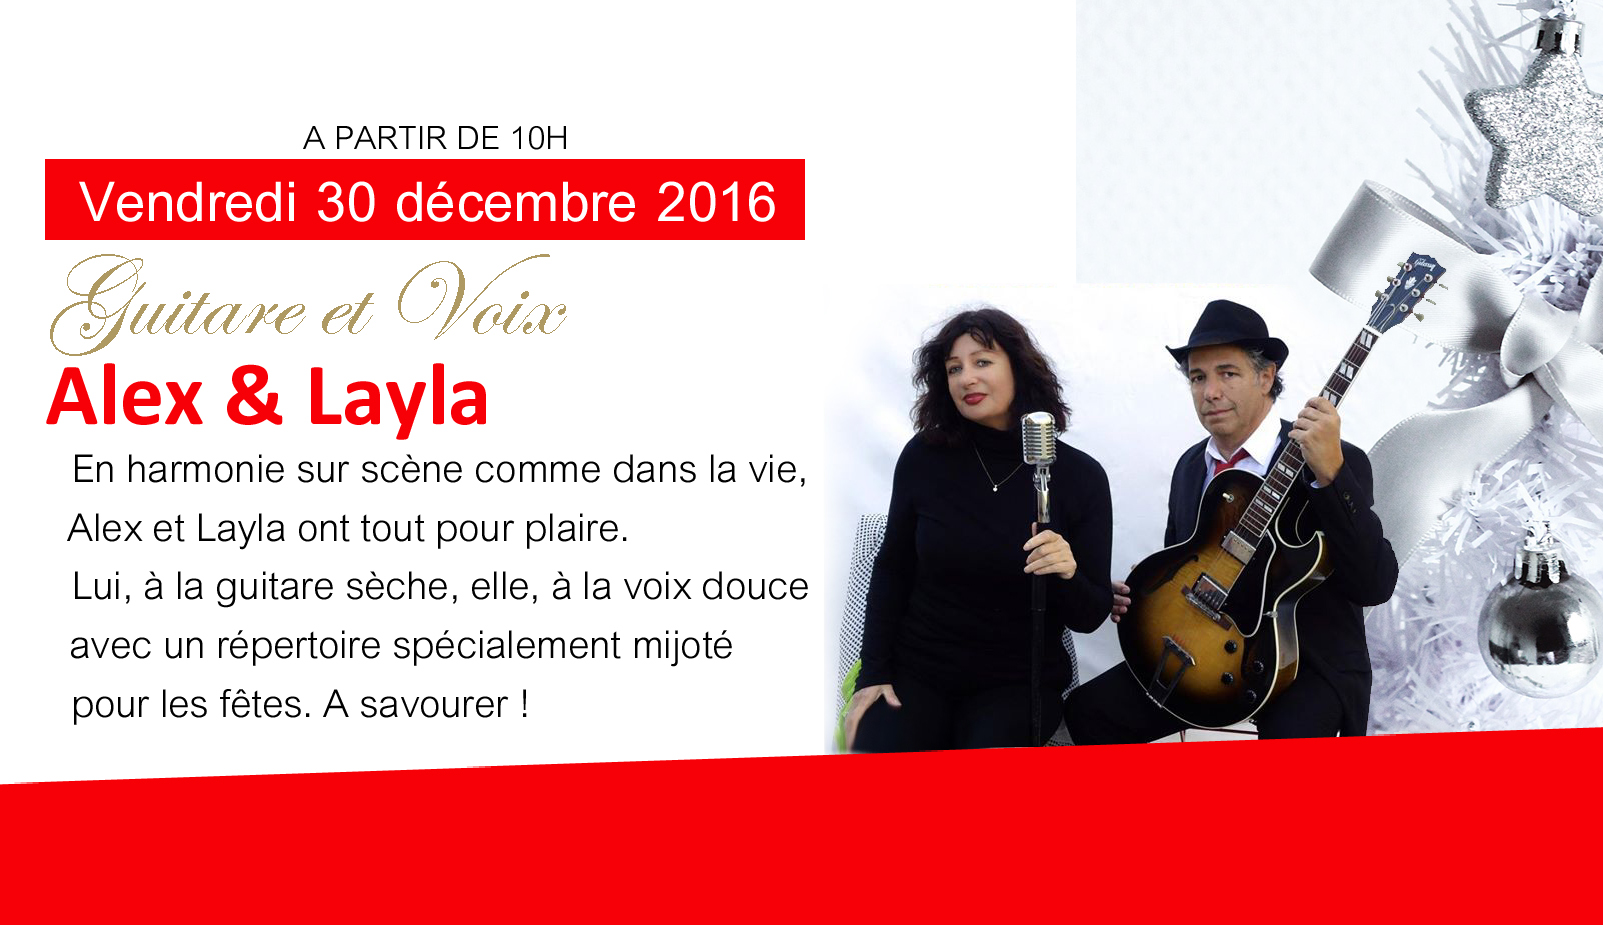 halles_narbonne_animation_alex__layla_2016